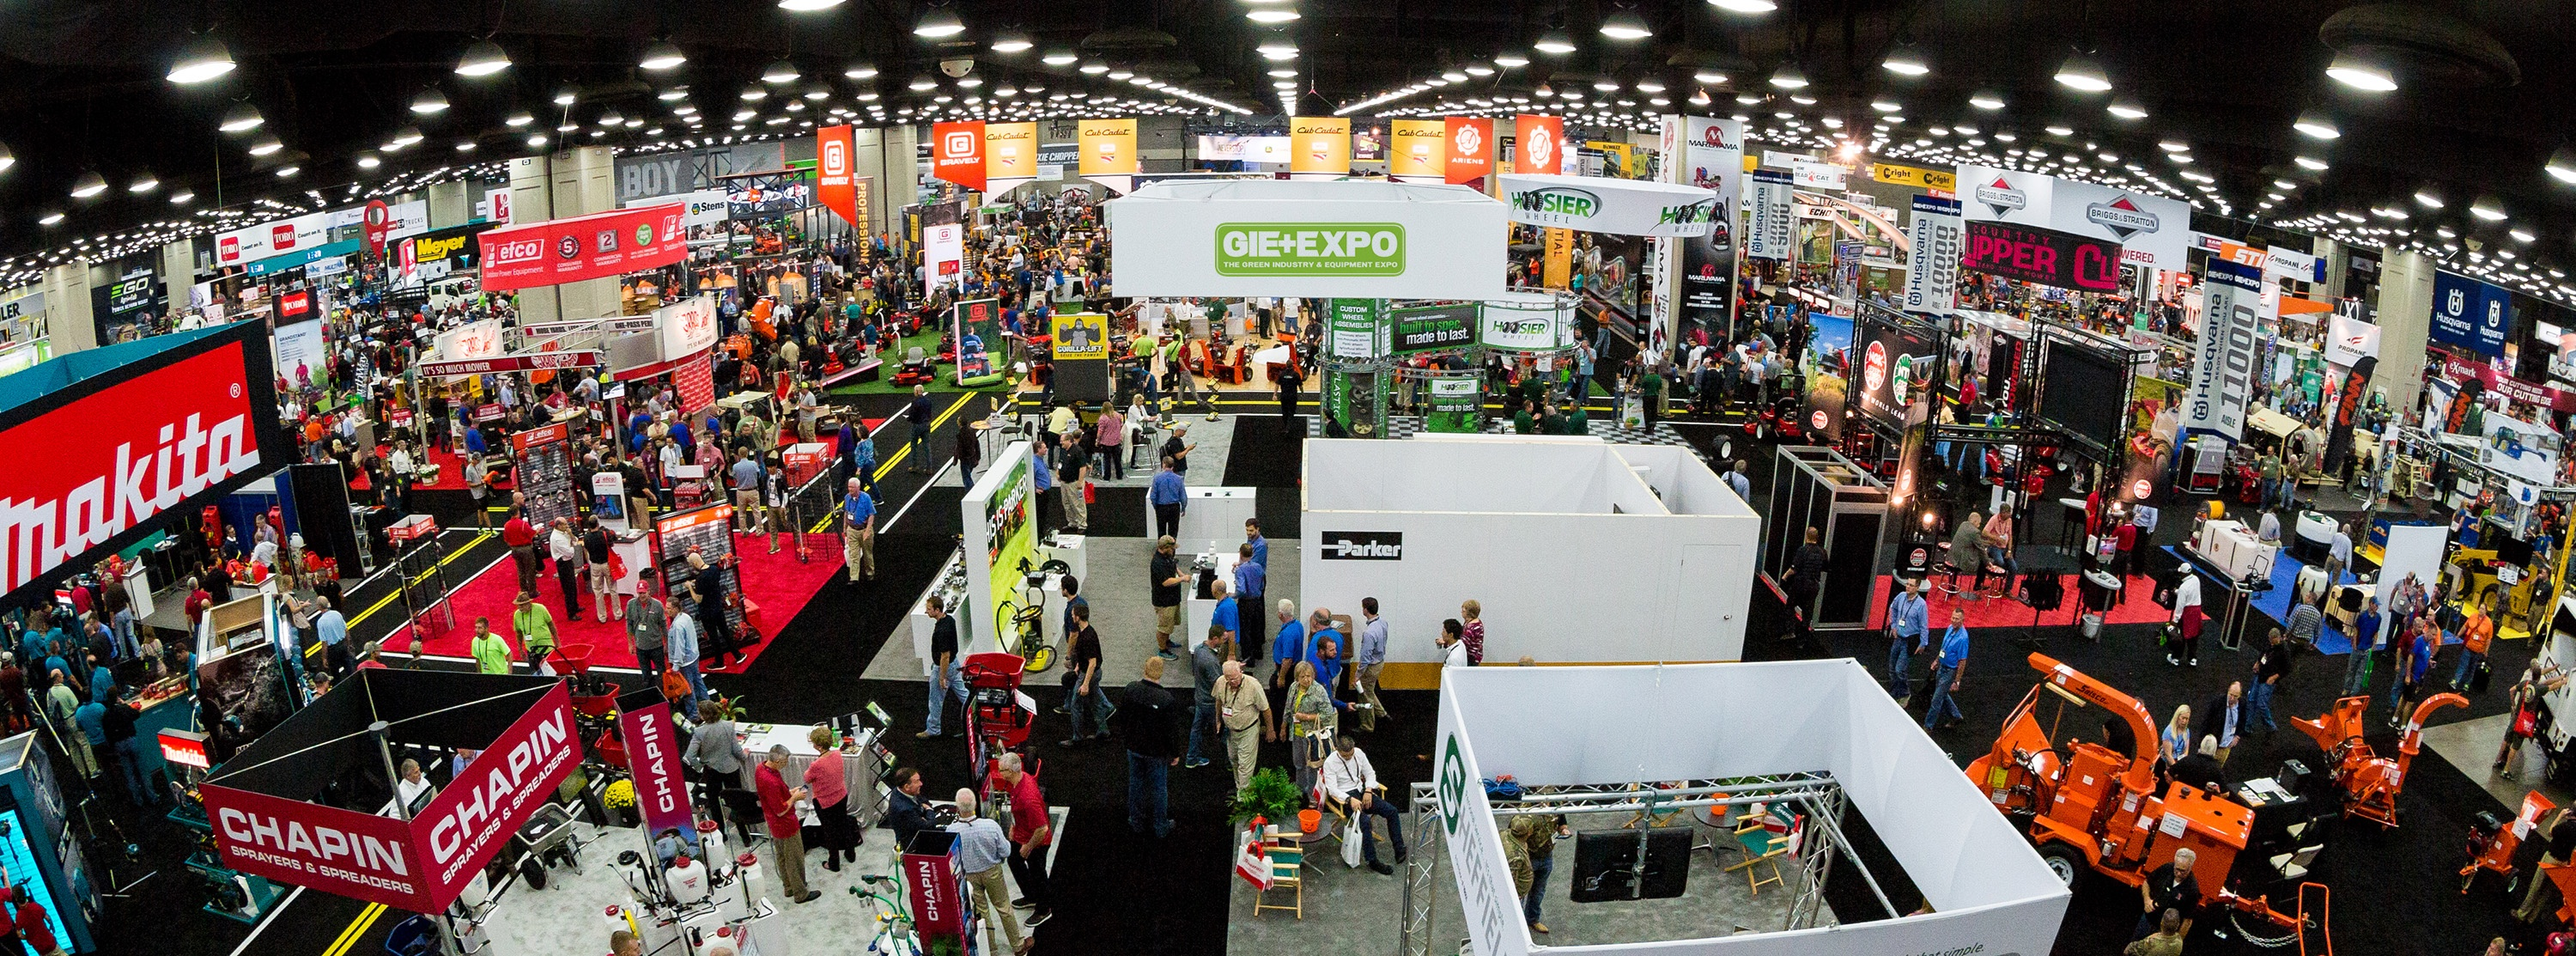 GIE Expo and LANDSCAPES 2017